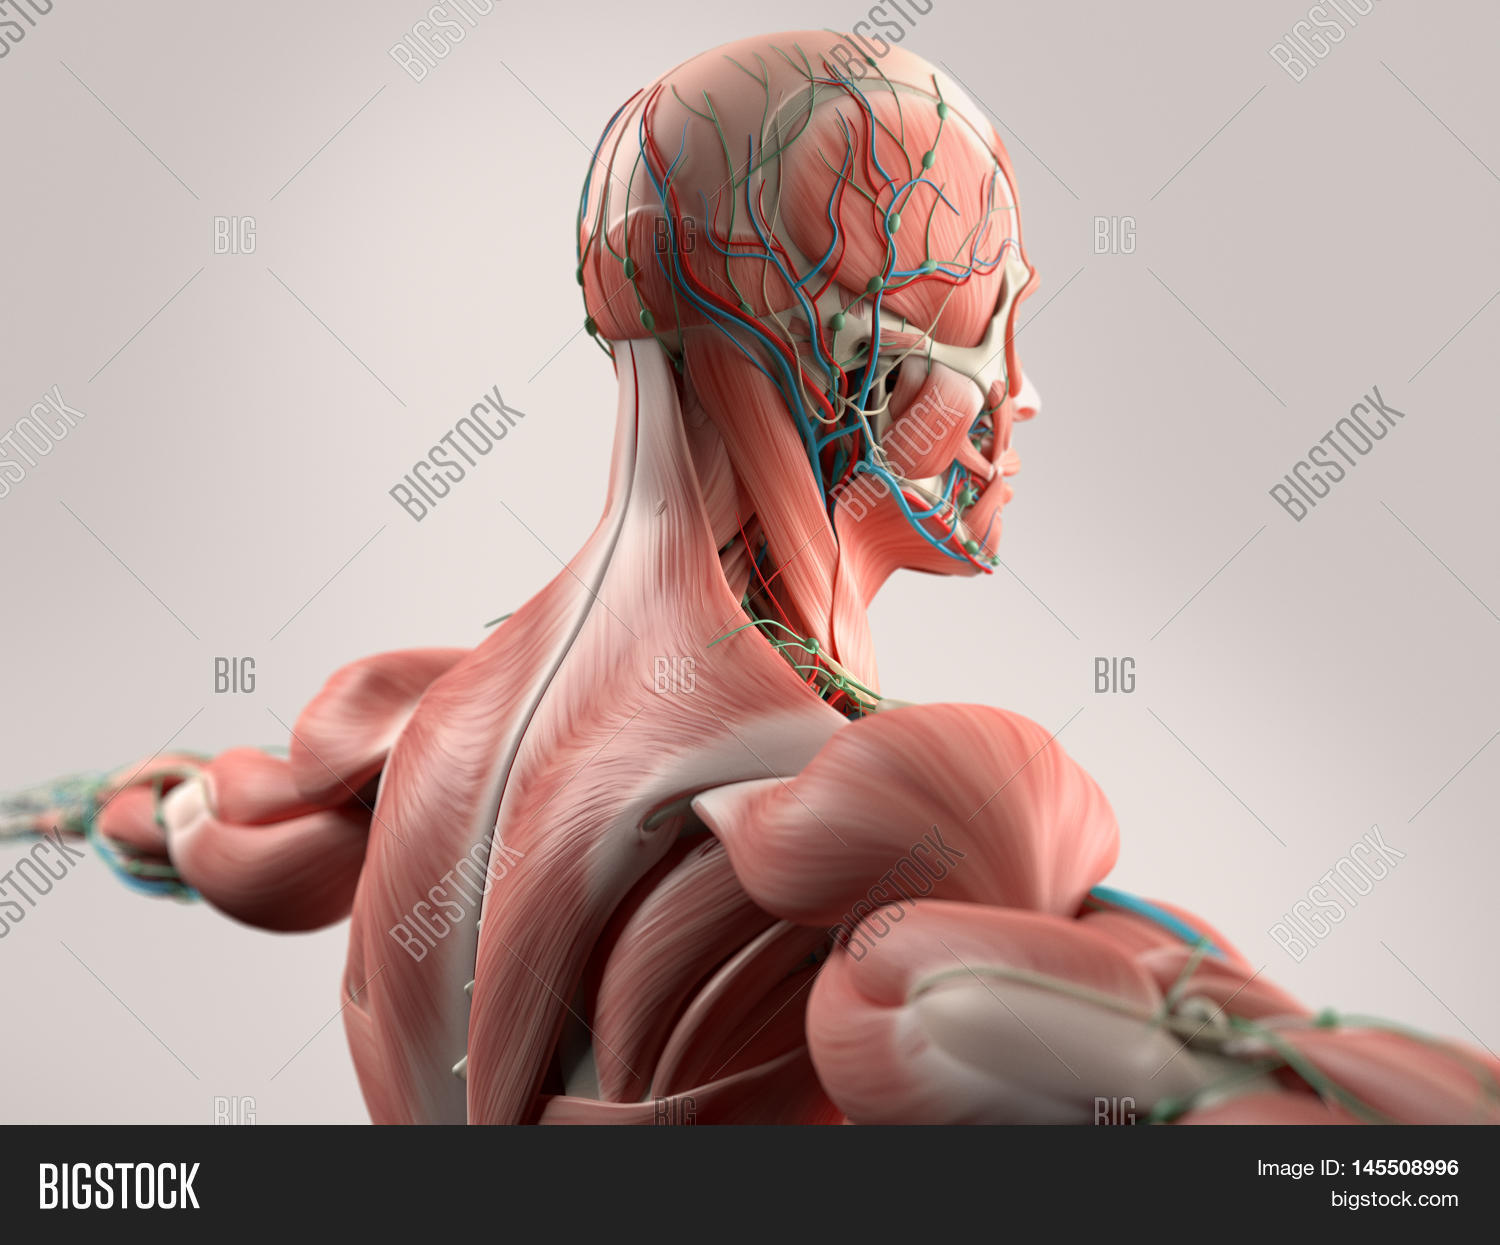 Human anatomy jobs